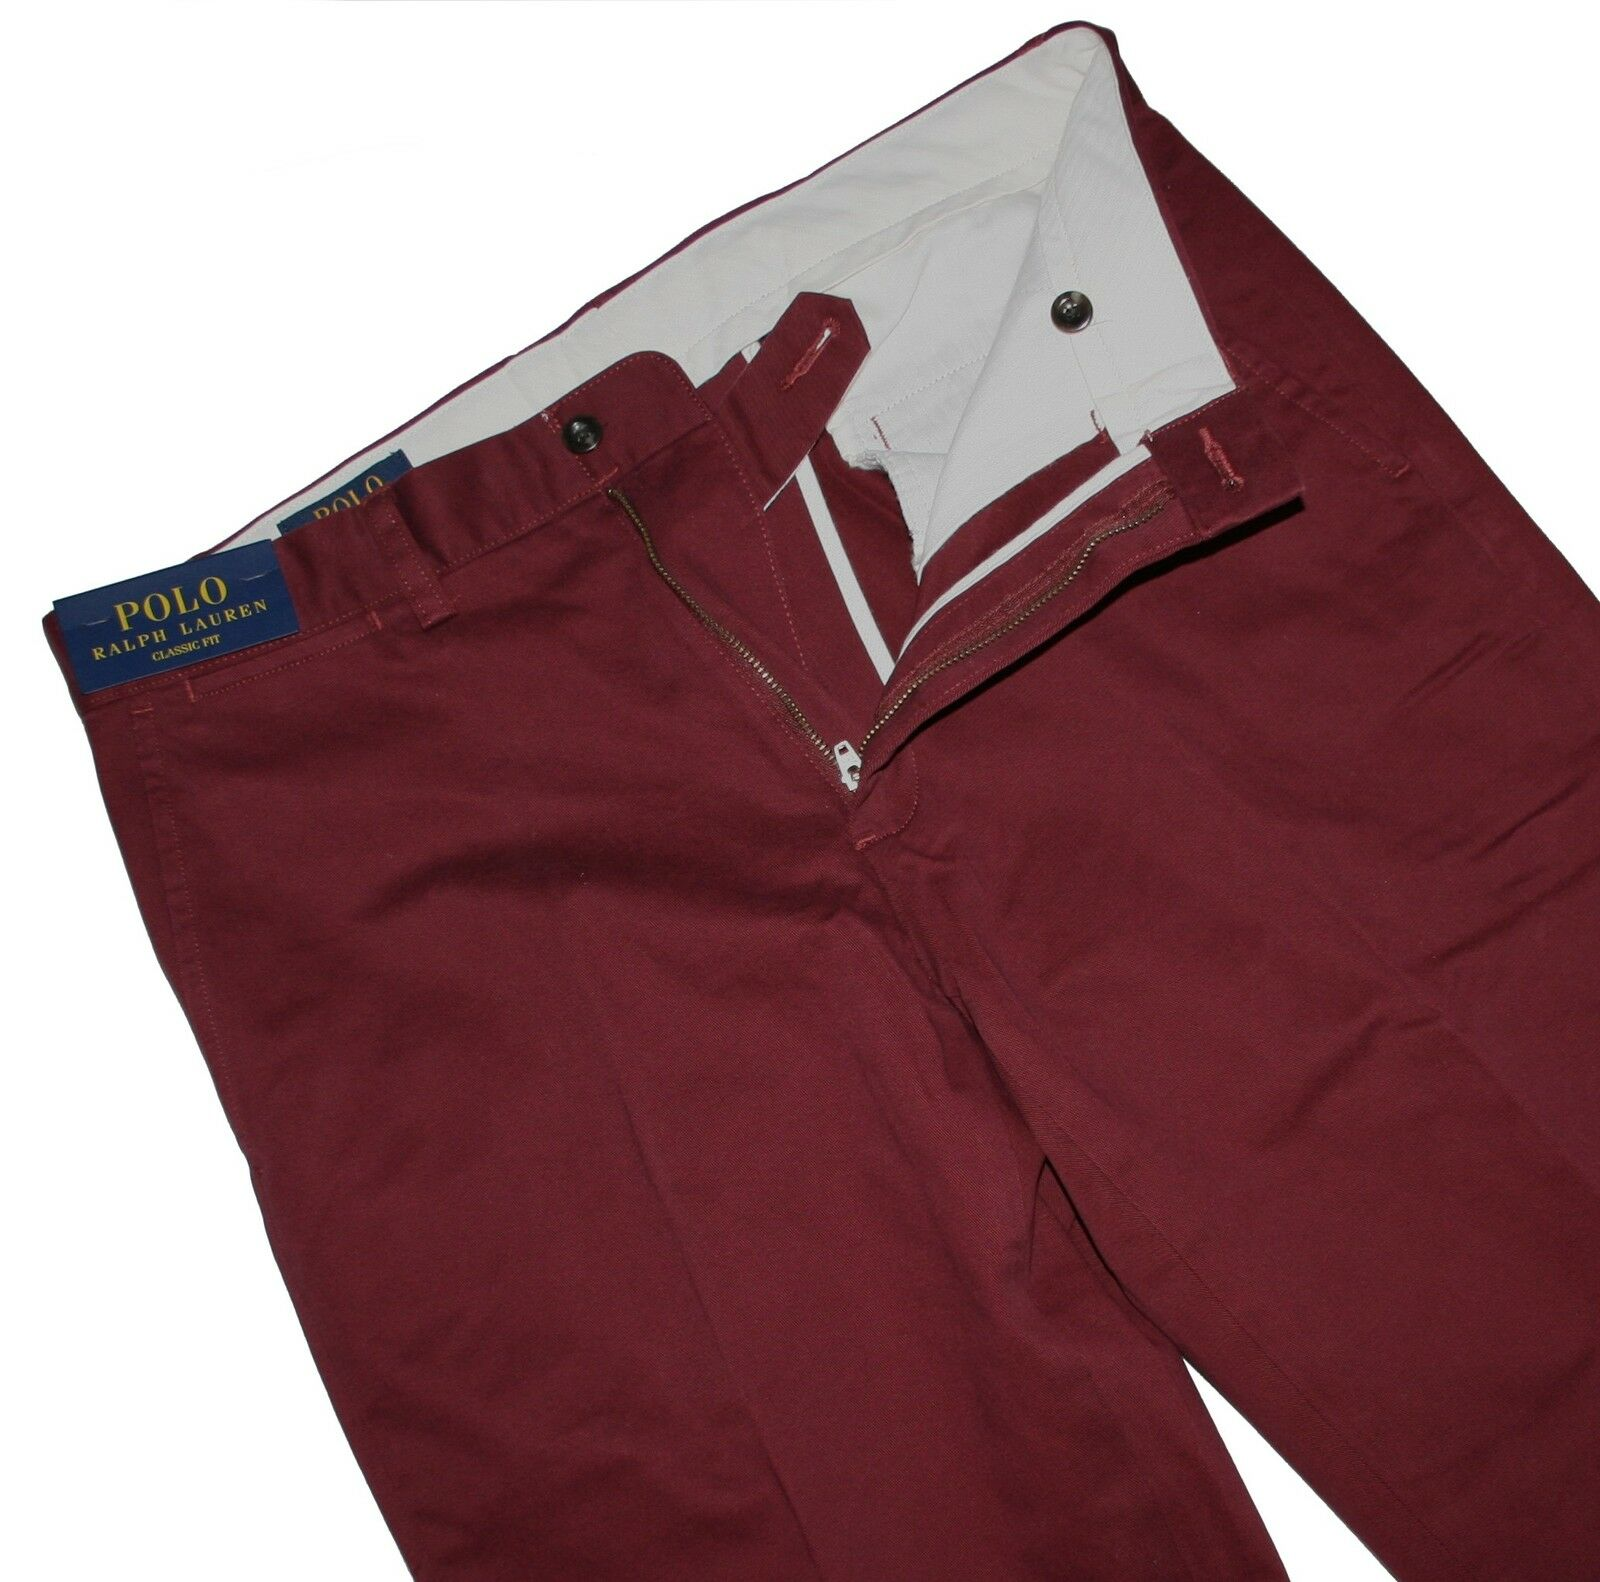 Polo Ralph Lauren Classic Fit Preston Dark rot Pant Chino Hose